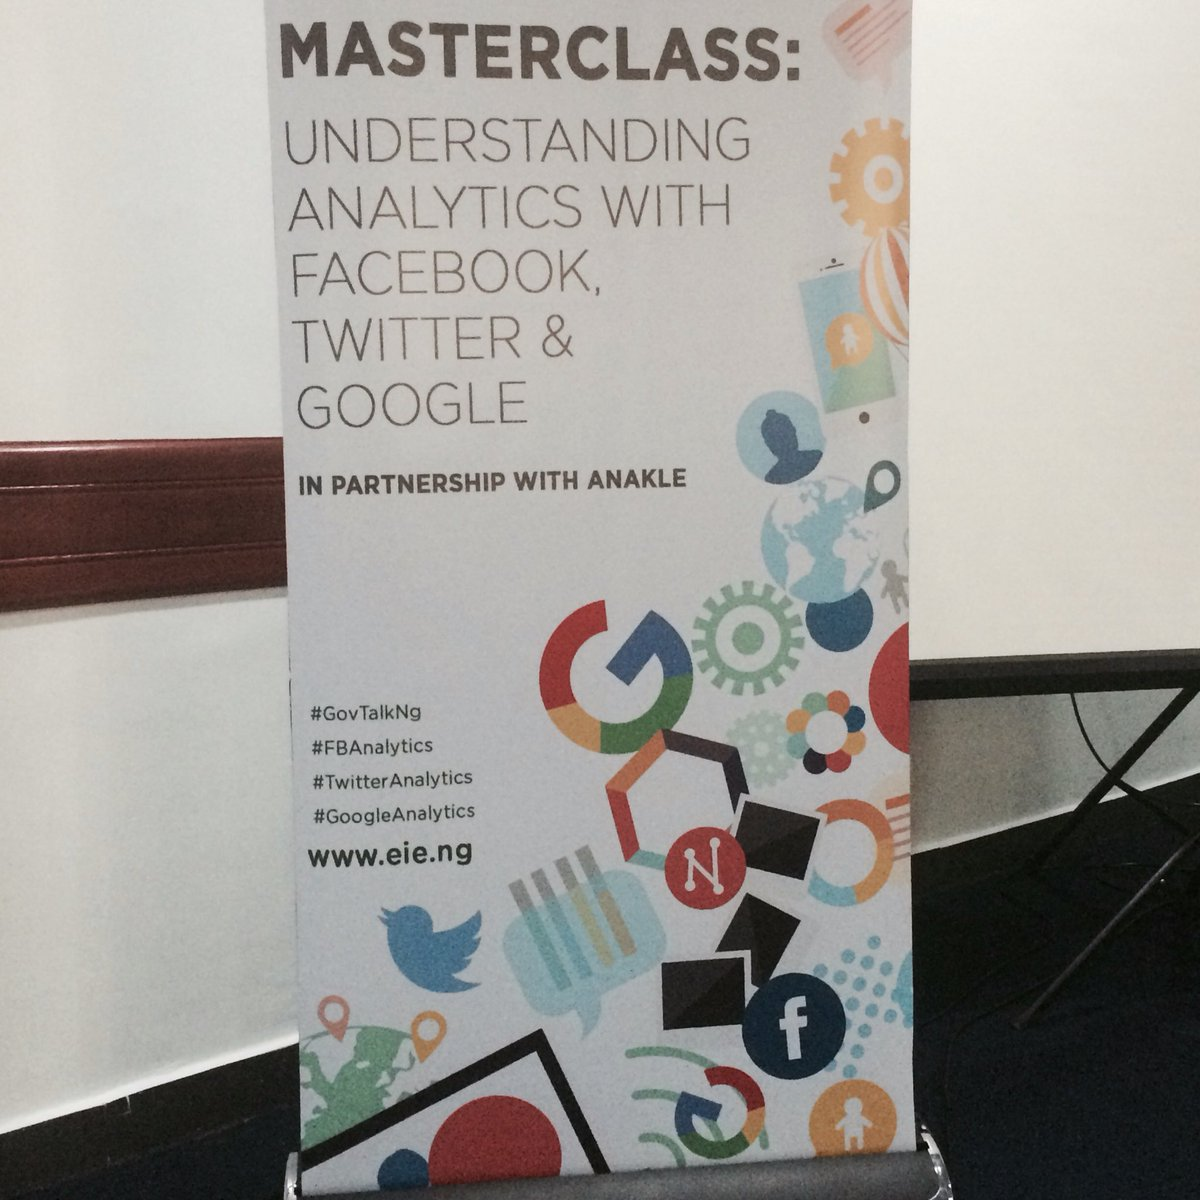 Thumbnail for SMWLagos 2016 Masterclass: Twitter and Google Analytics - with Anakle